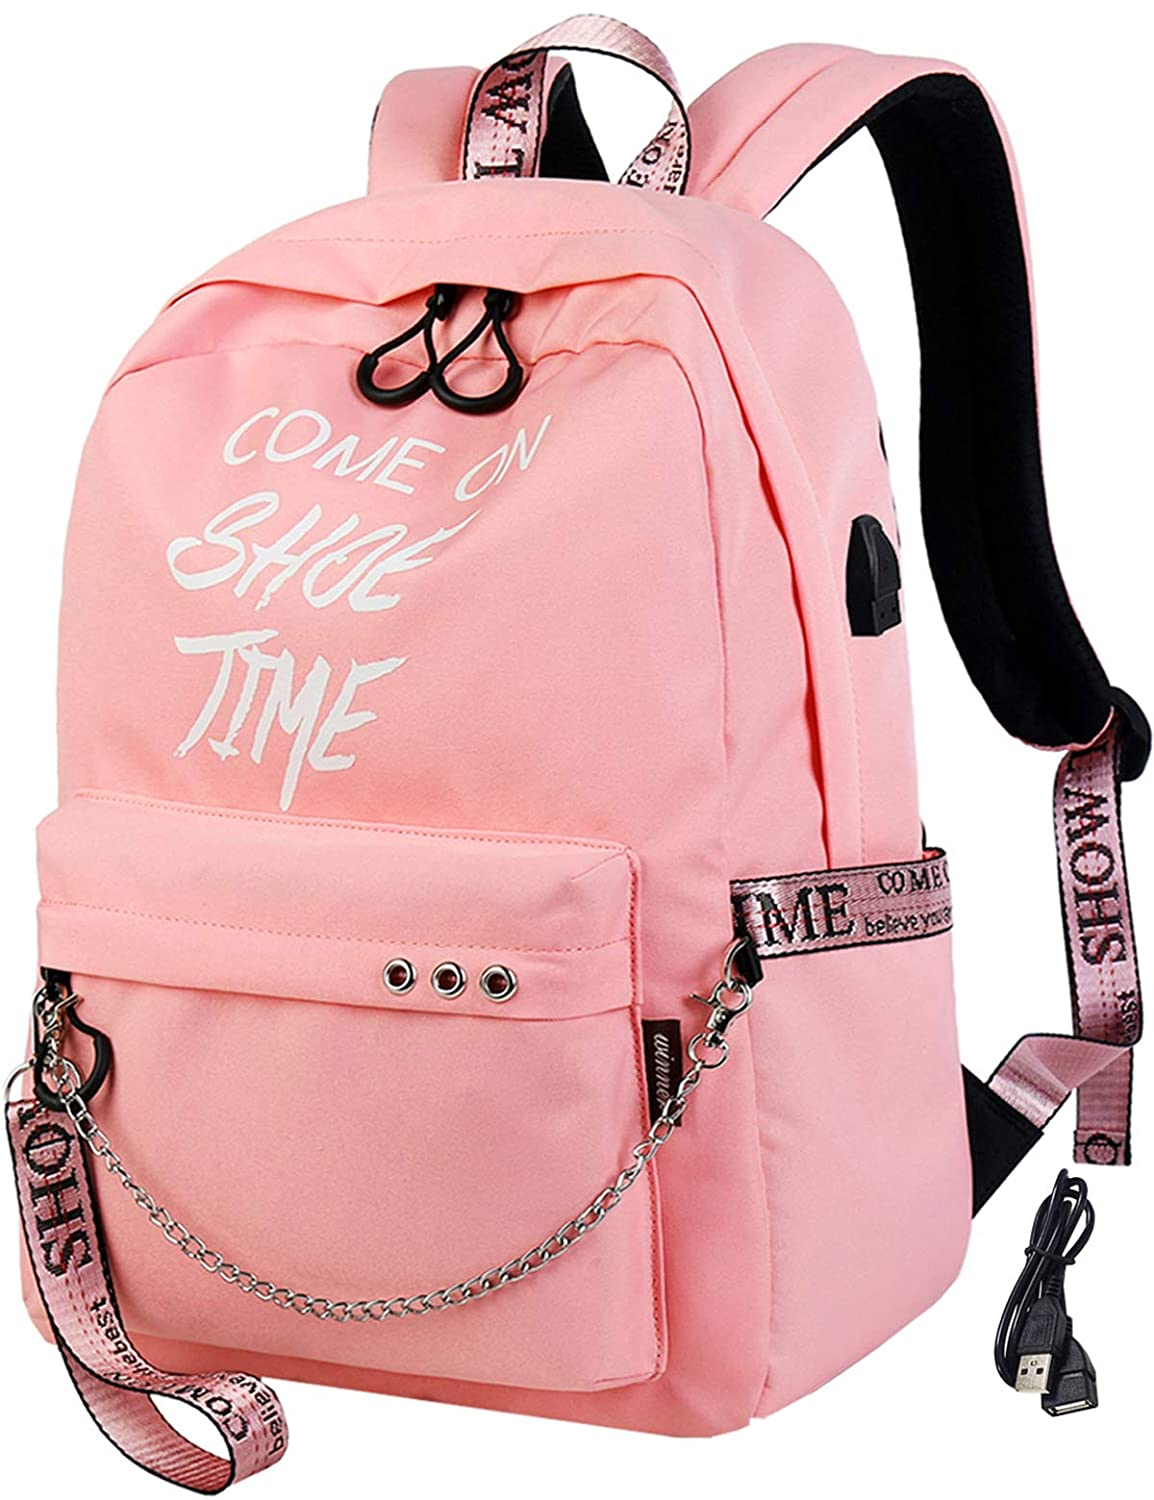 a6785c2759e4 El-fmly Fashion Luminous Backpack with USB Port,College School Bags  Backpacks Girls Denim Cute Bookbags Student Backpack School Laptop Backpack  Bag ...